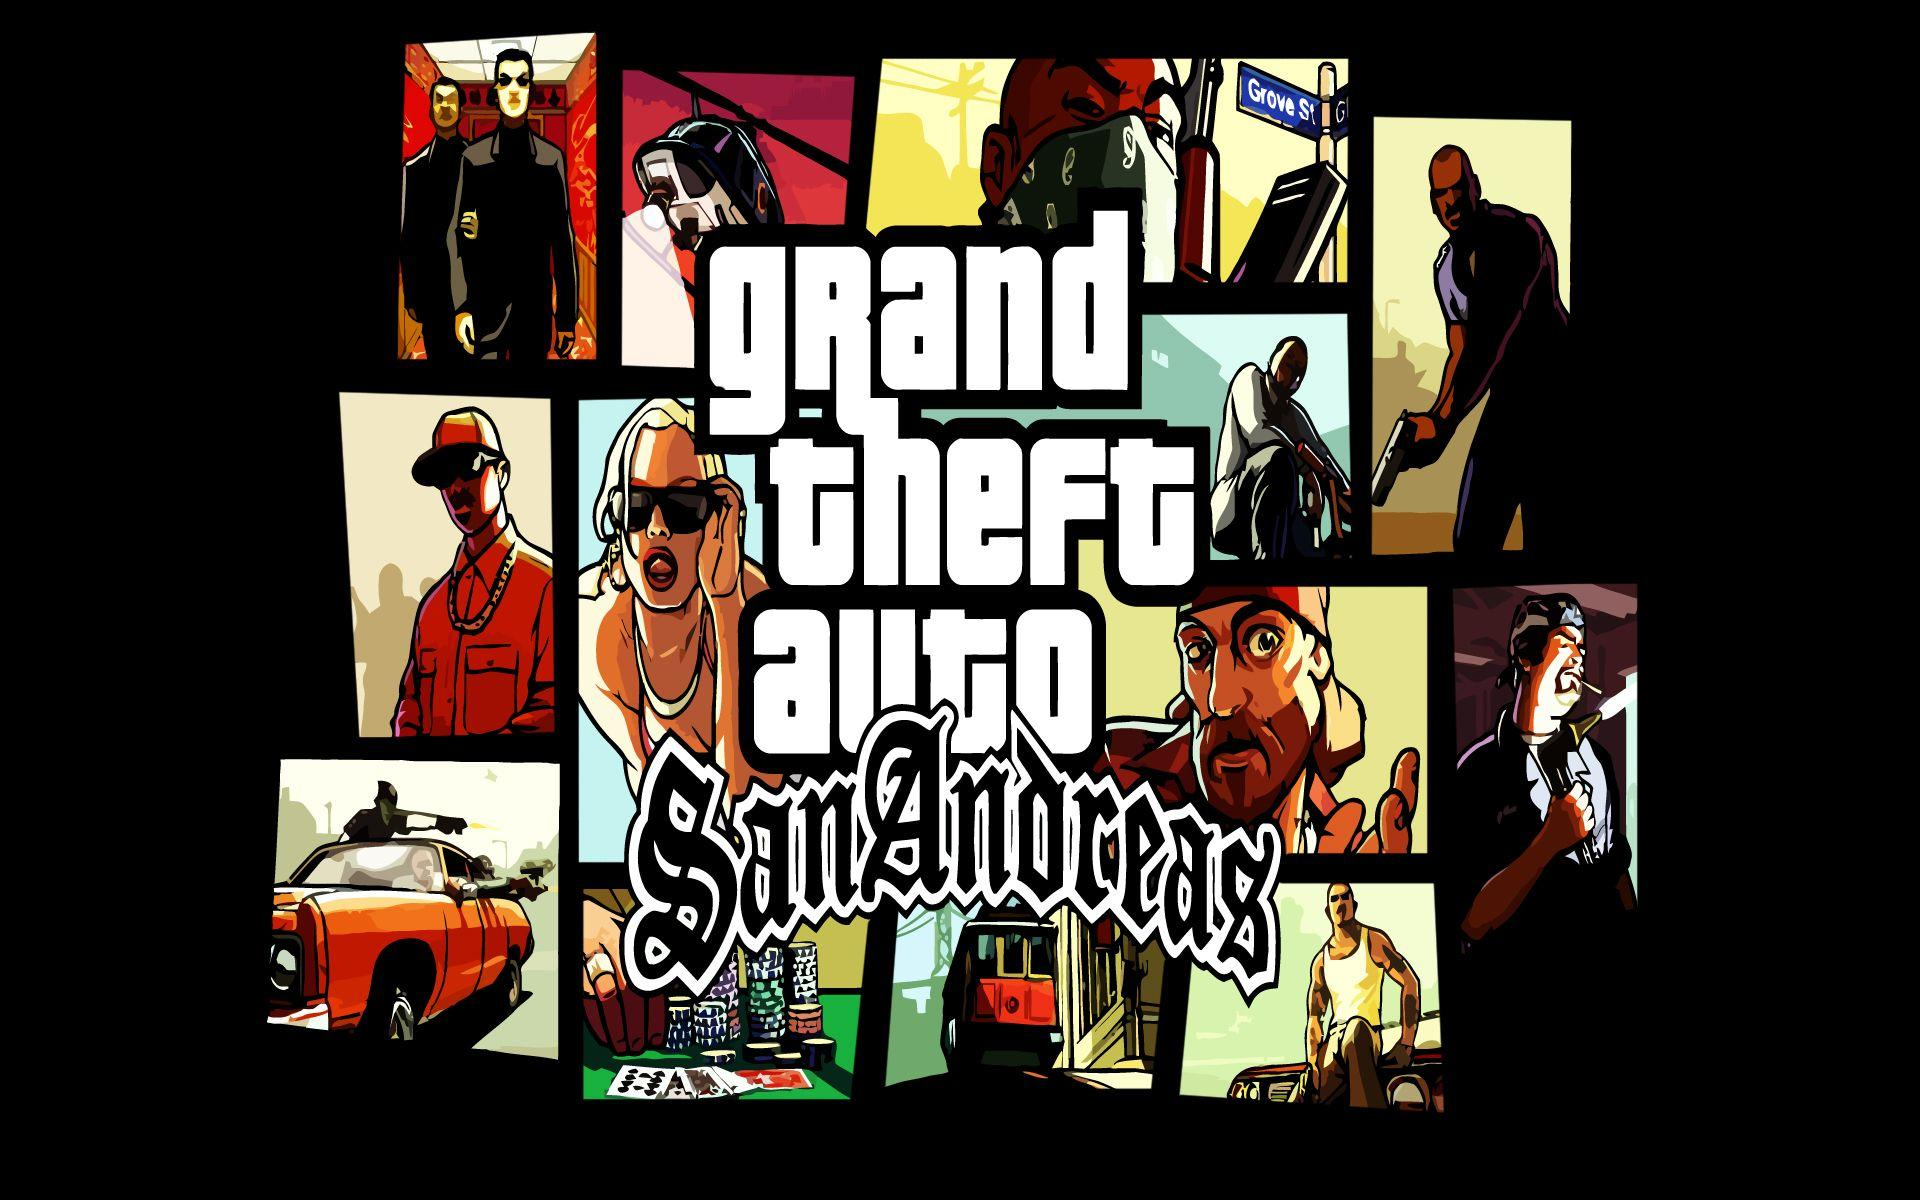 Grand Theft Auto: San Andreas Wallpapers - Wallpaper Cave